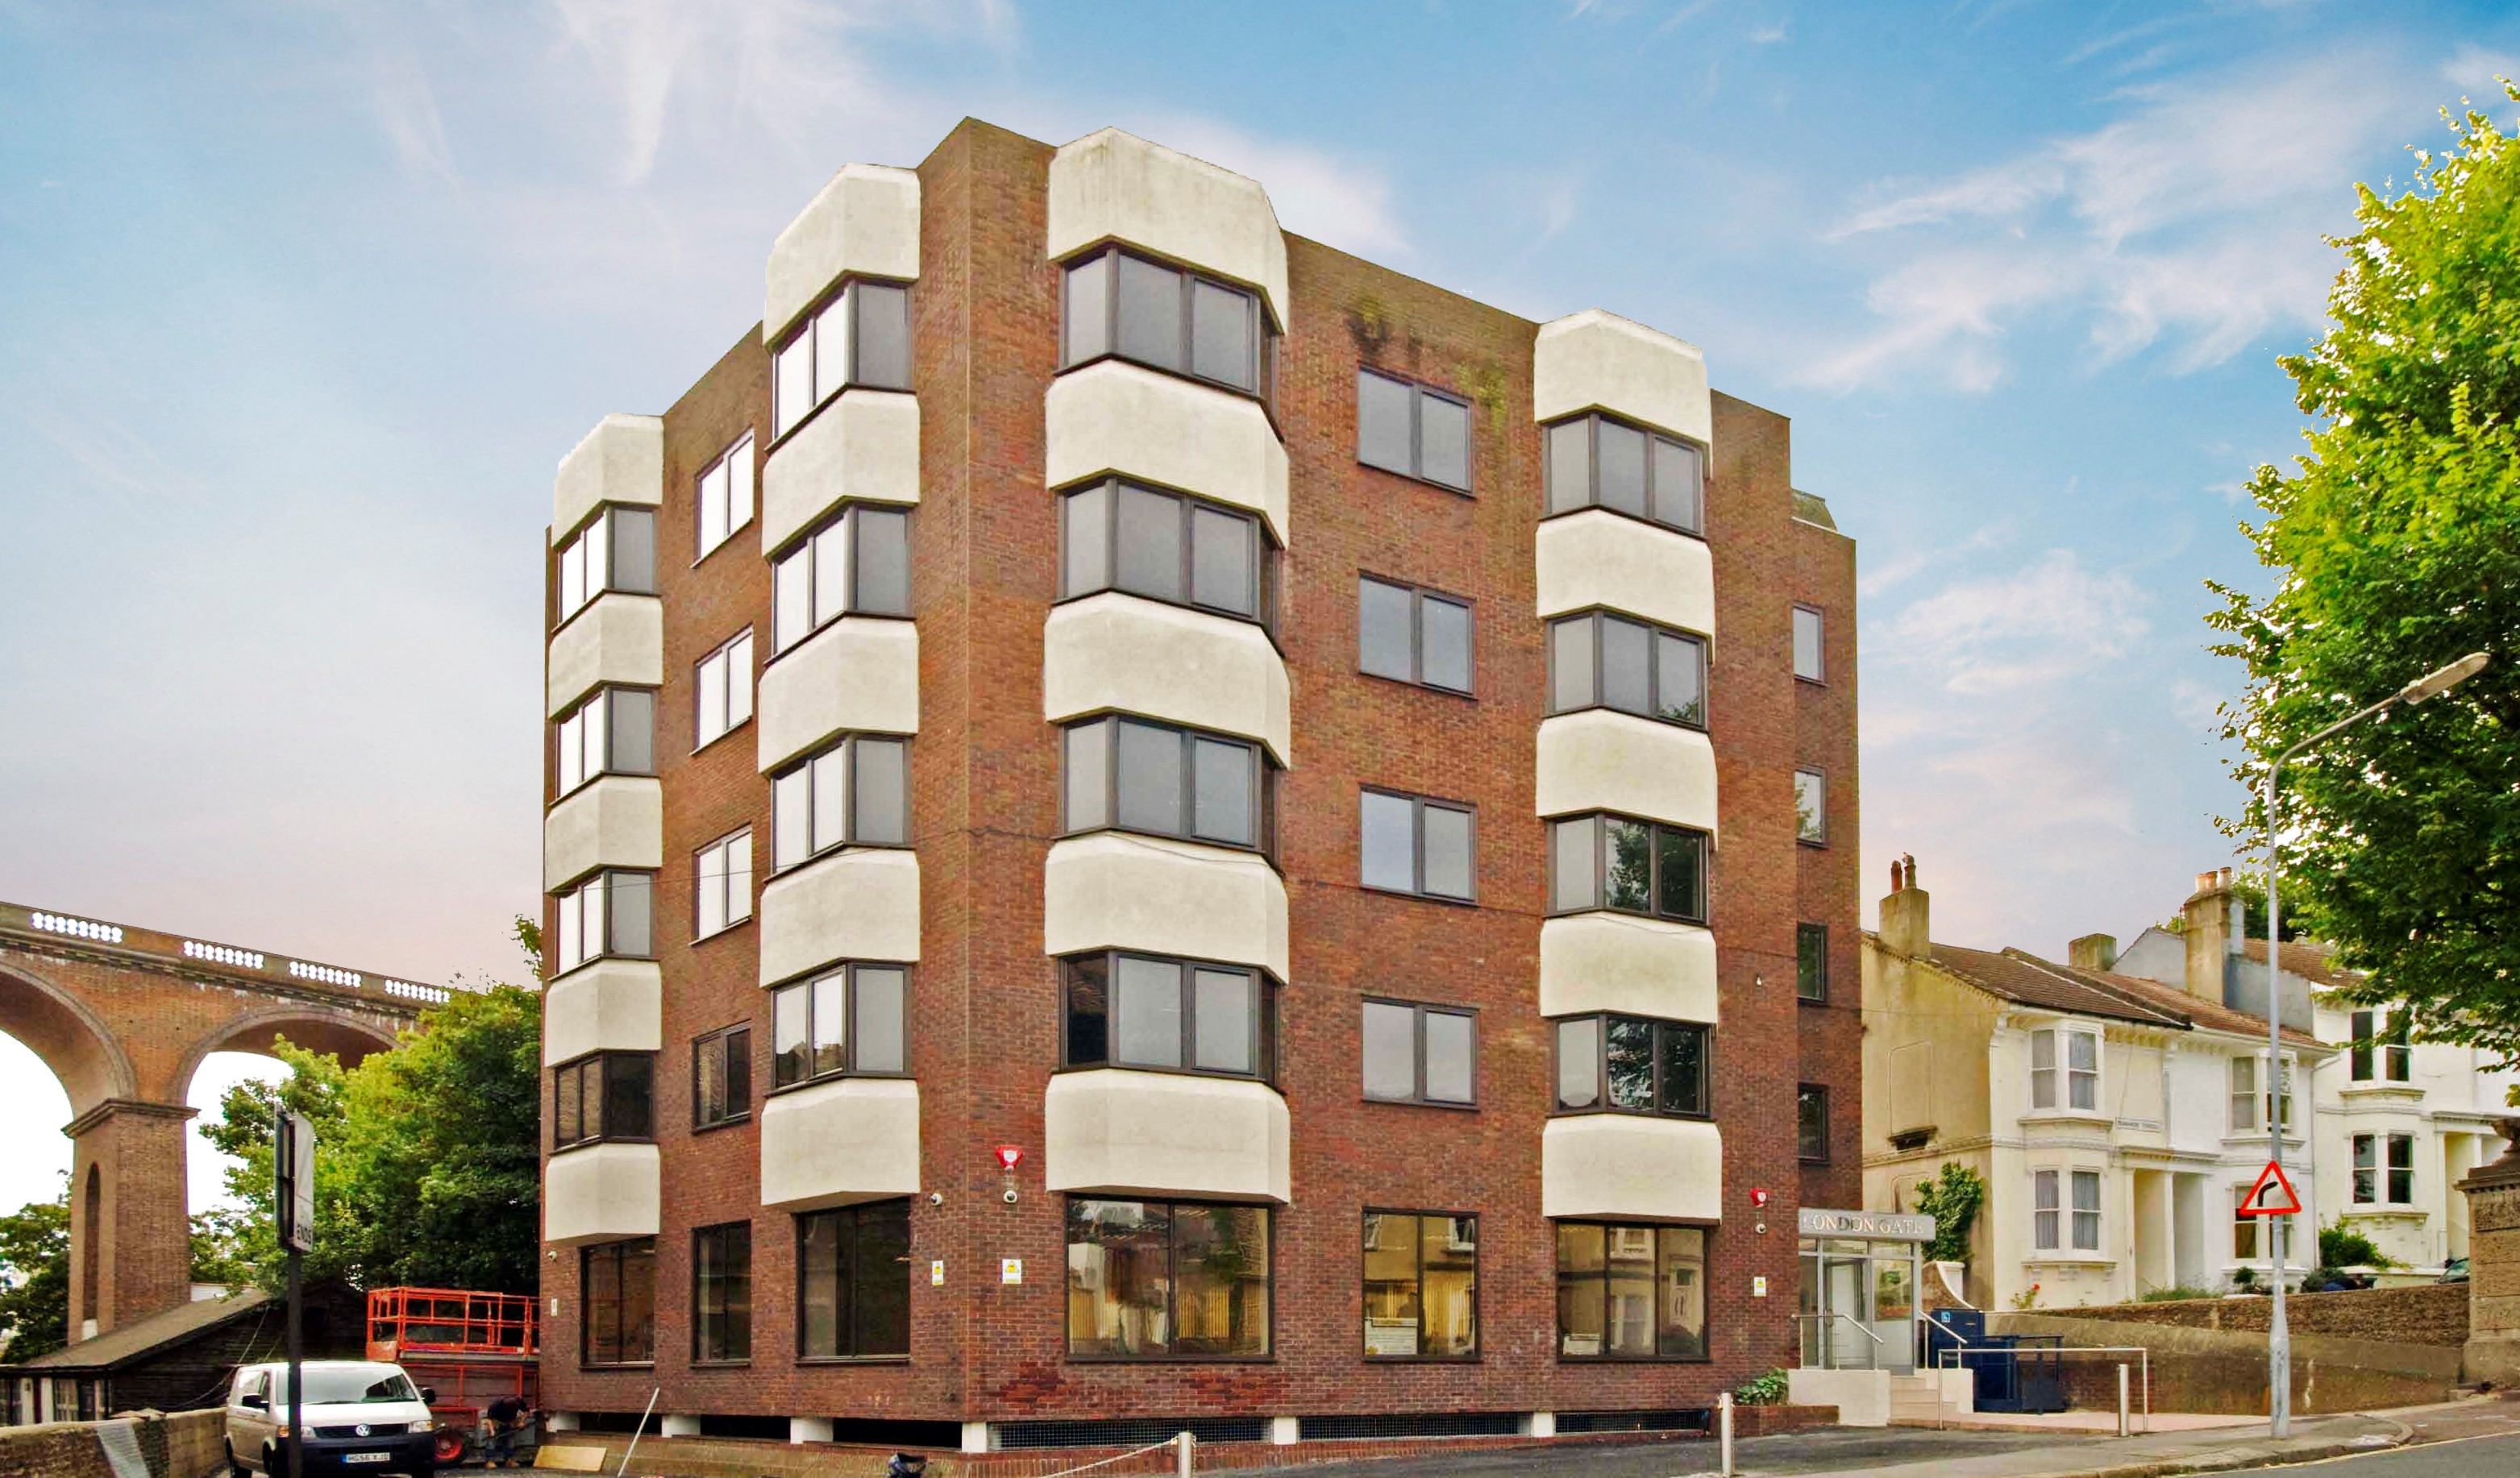 Newly Available: Office uite with Parking in Brighton to let